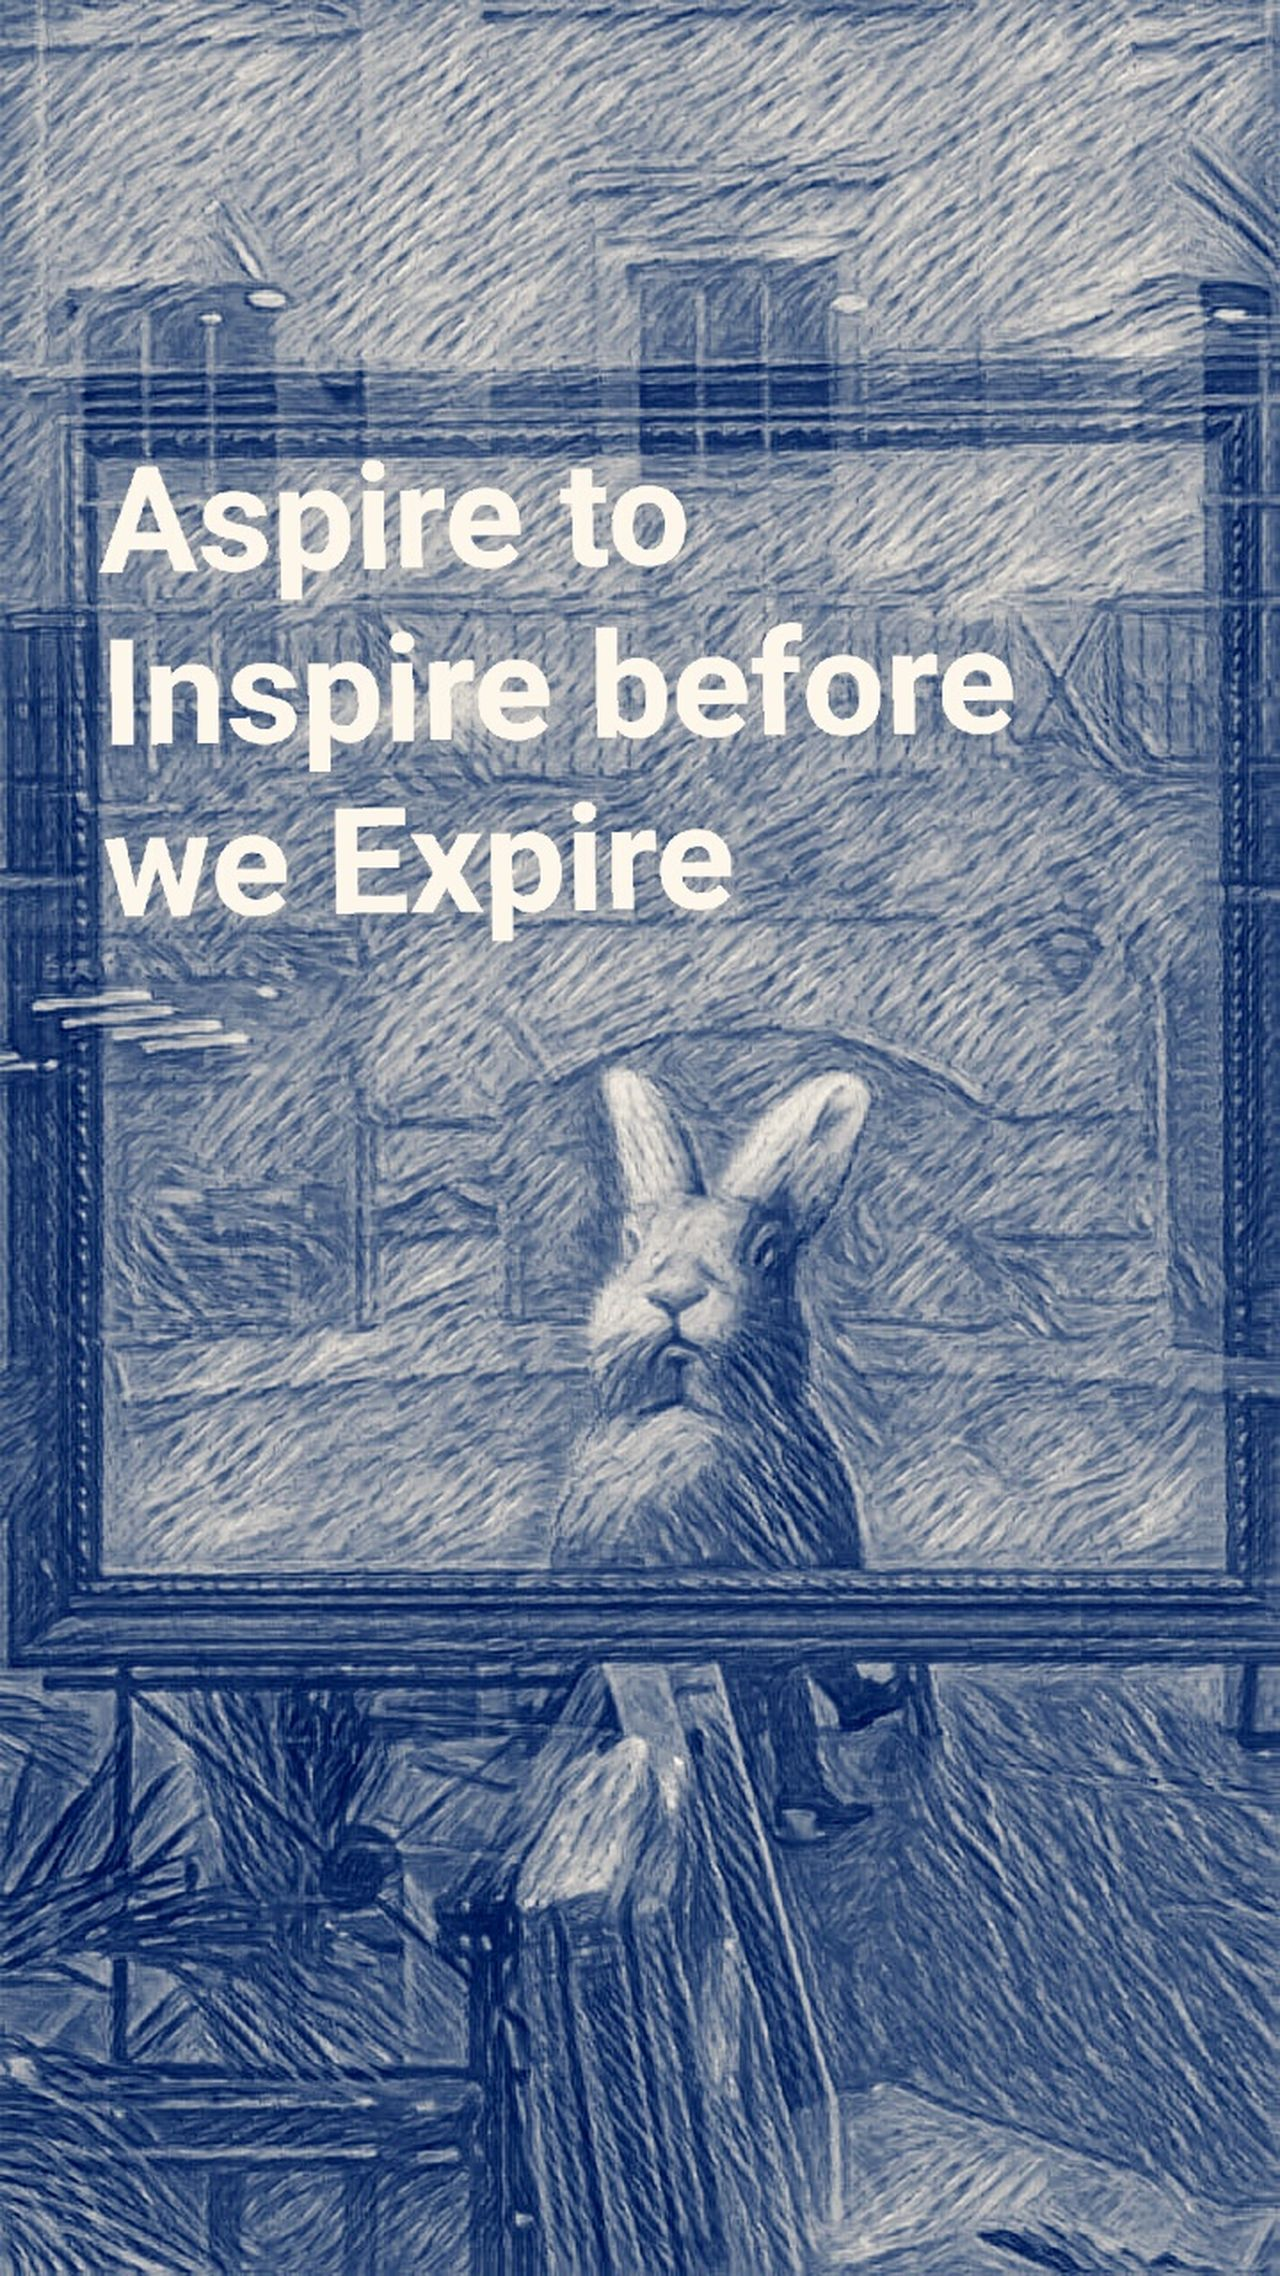 Sometime's In Life we must. Rabbit Text Day Original No People Communication Aspire Inspired By Art